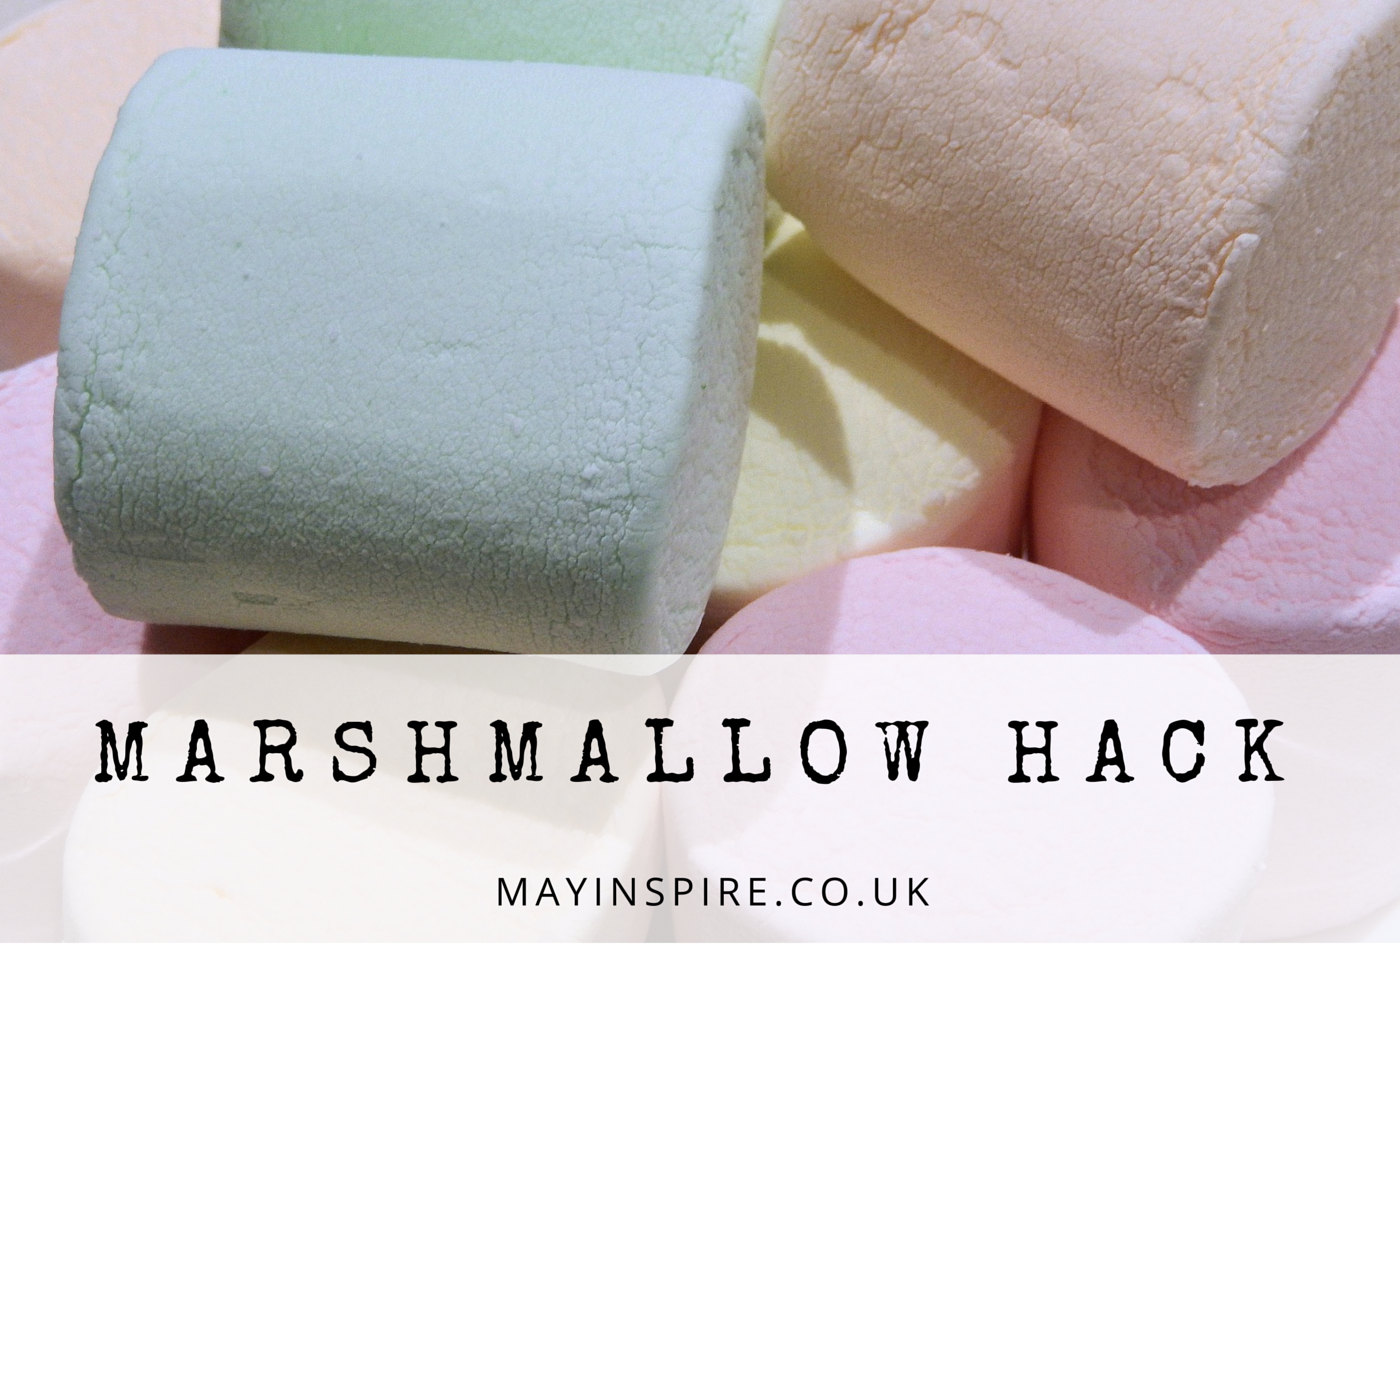 As a hot chocolate fan, I love a marshmallow or six! If I leave the bag open and they go a little hard, I pop them in the freezer. They are lovely when frozen, almost like the inside of a snicker bar! Try, you will not regret it…well unless you hate marshmallow!   🍸 ✂